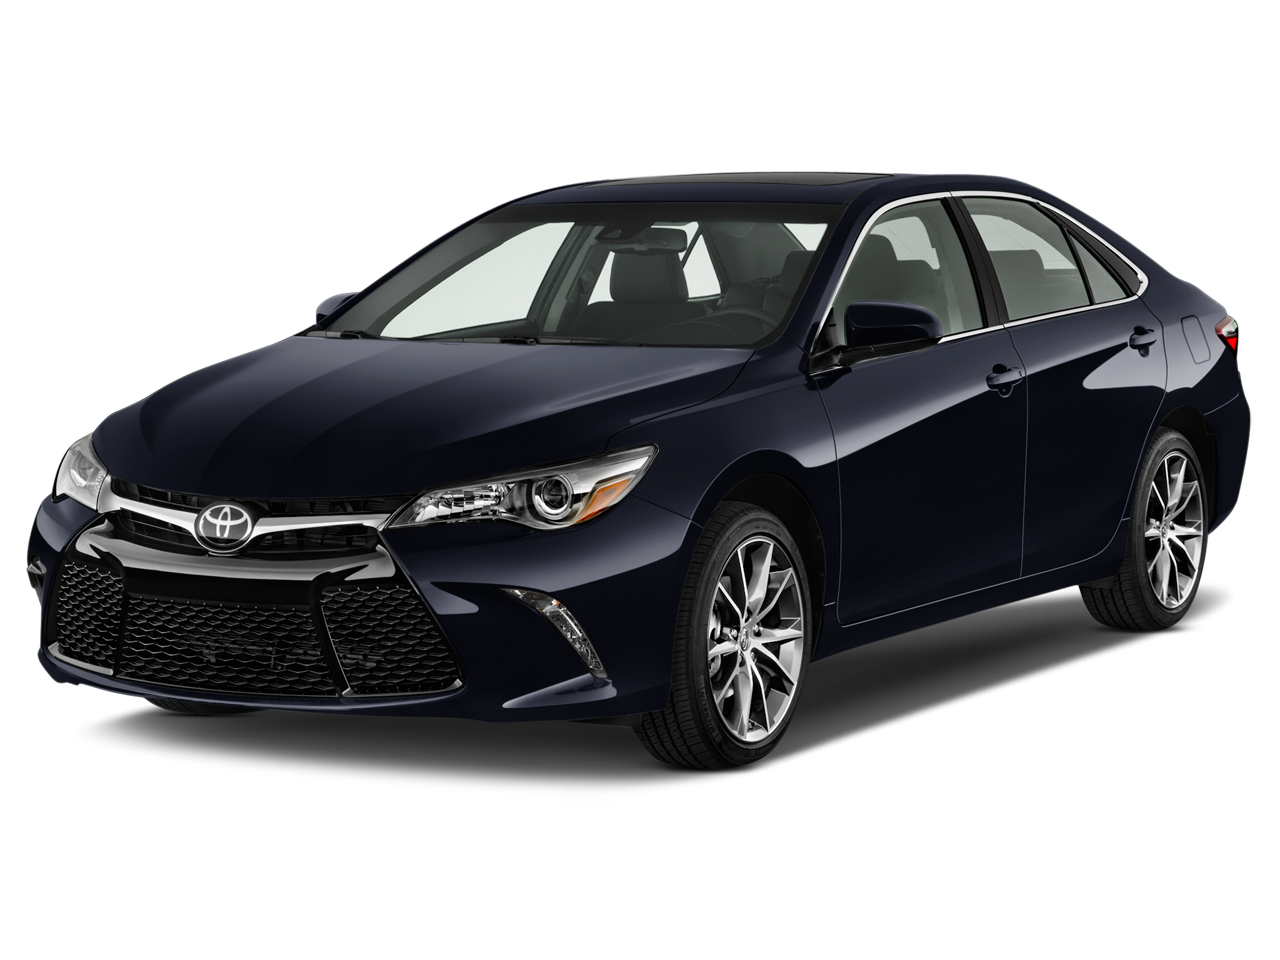 new 2017 toyota camry xse v6 near morristown nj toyota of morristown. Black Bedroom Furniture Sets. Home Design Ideas